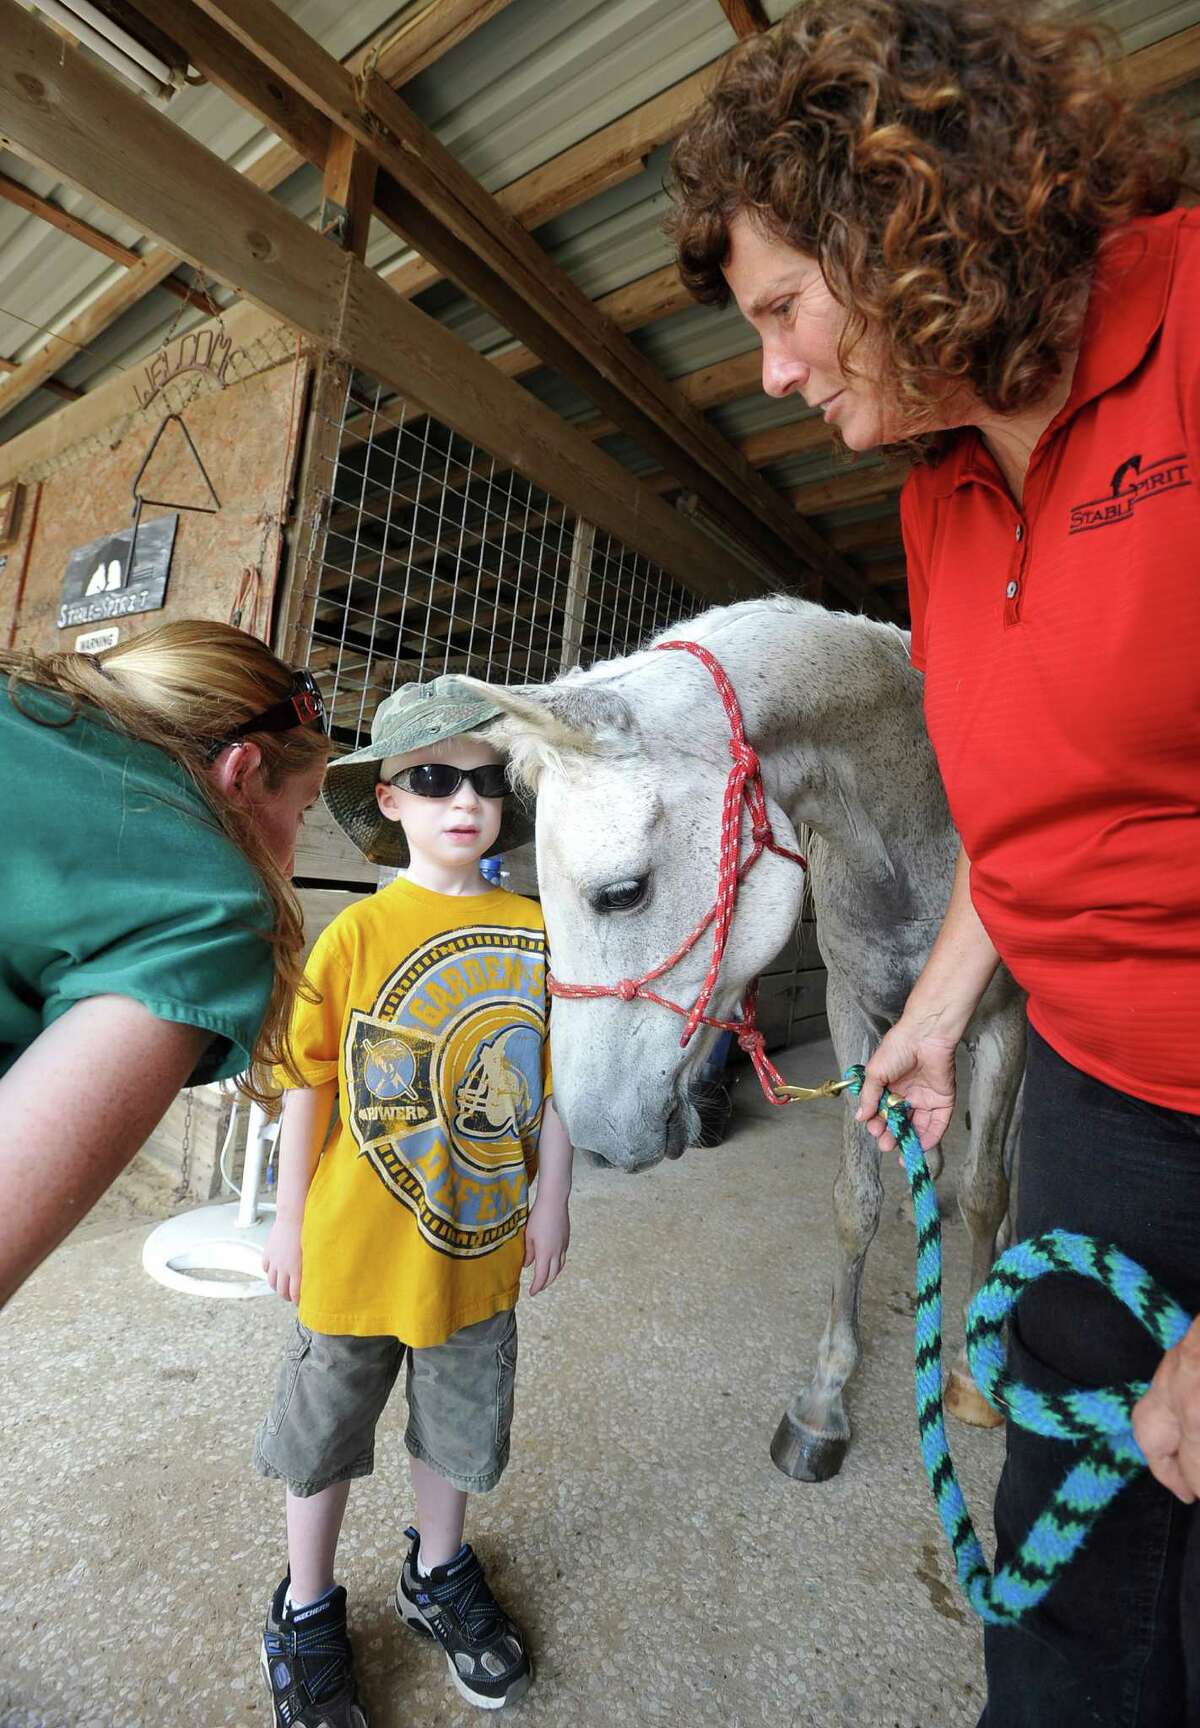 Stable Spirits helps people with mental health problems and others who may need physical therapy, recover through working with horses. Volunteers Rebekah Schaper left, works with Executive Director Katie Durio, right, getting Cash Huebel, middle, 5, ready to partake in the